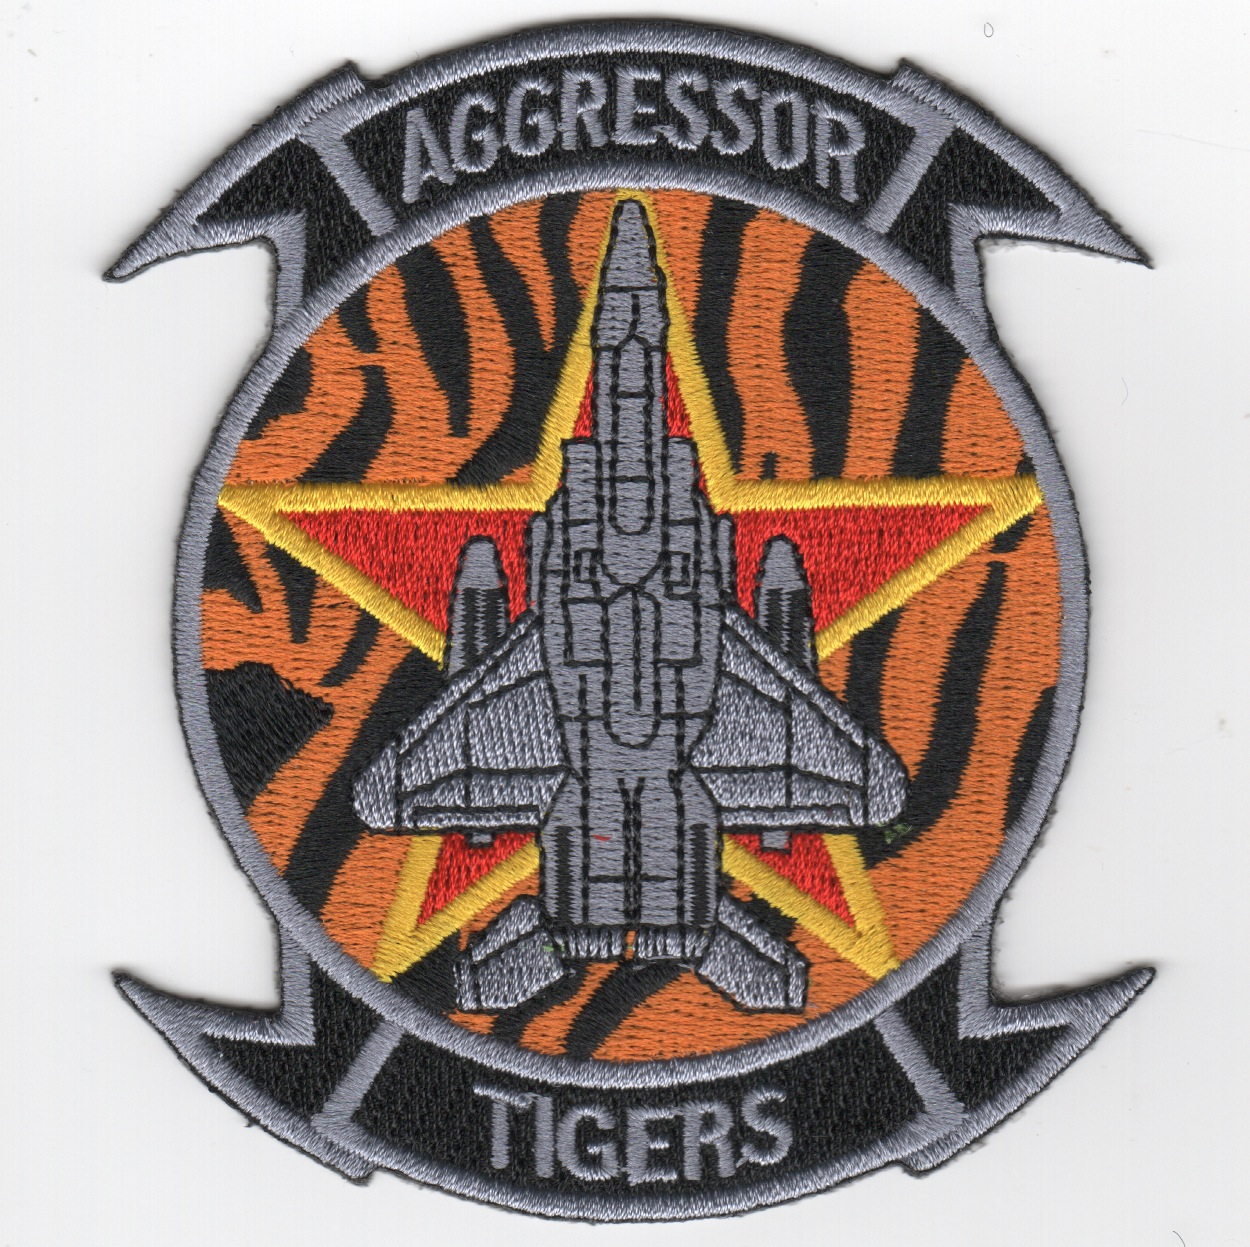 391FS 'Aggressor' Squadron Patch (Orange)